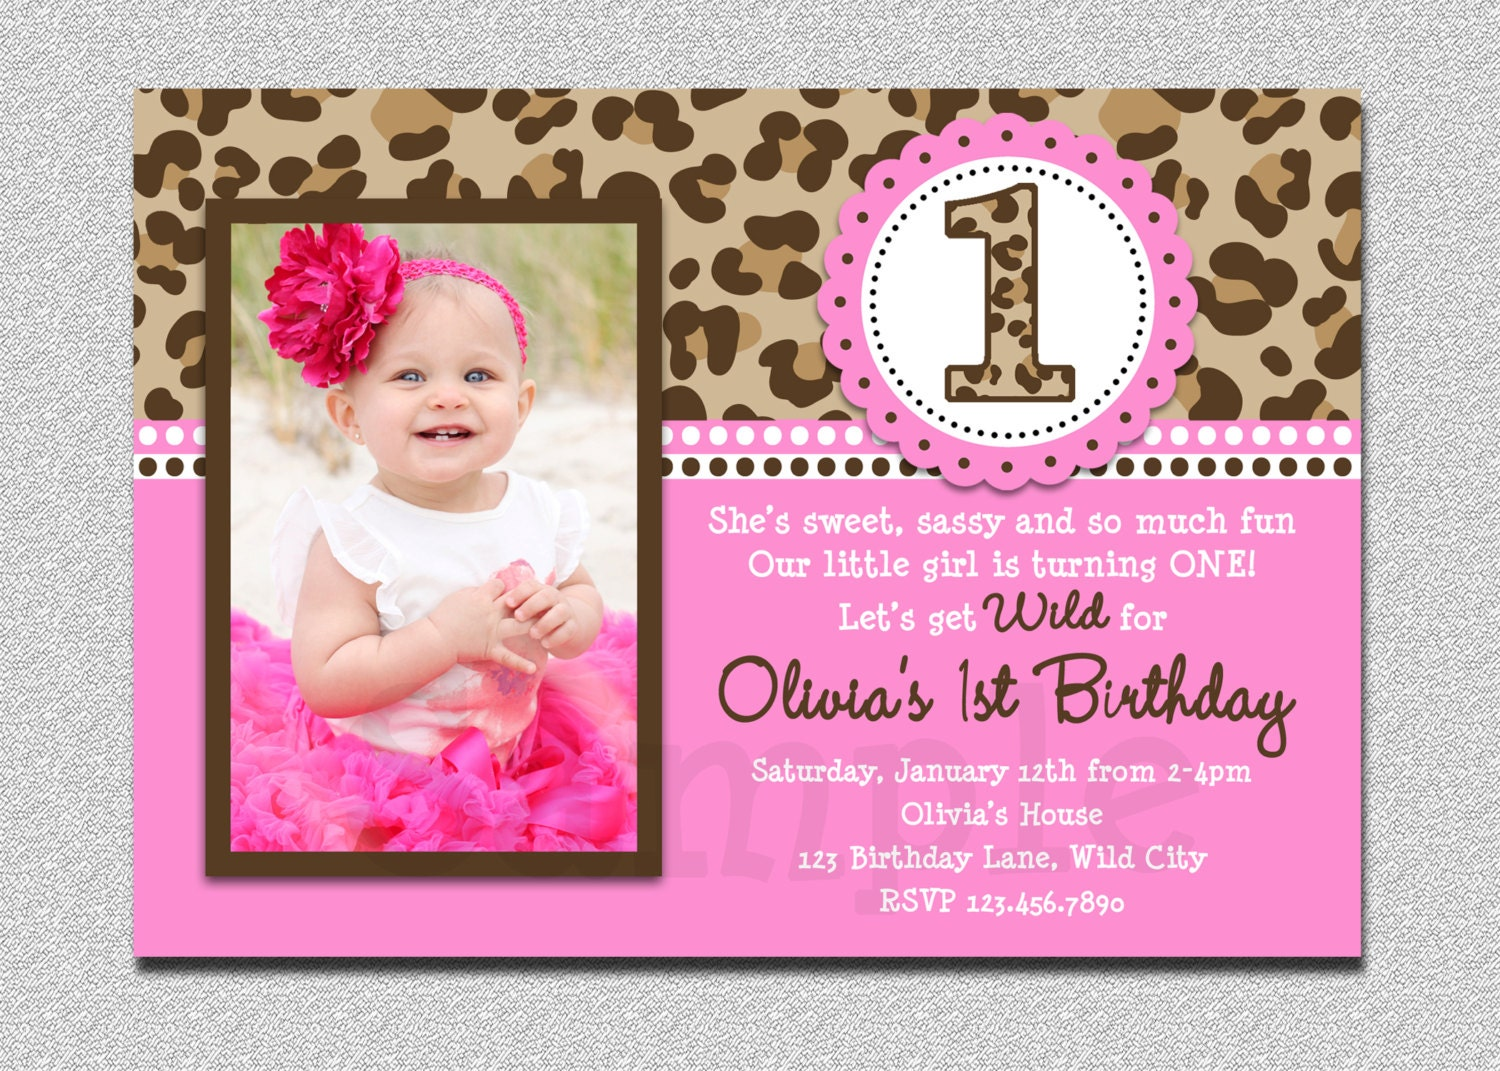 leopard birthday invitation 1st birthday party invitation, Birthday invitations